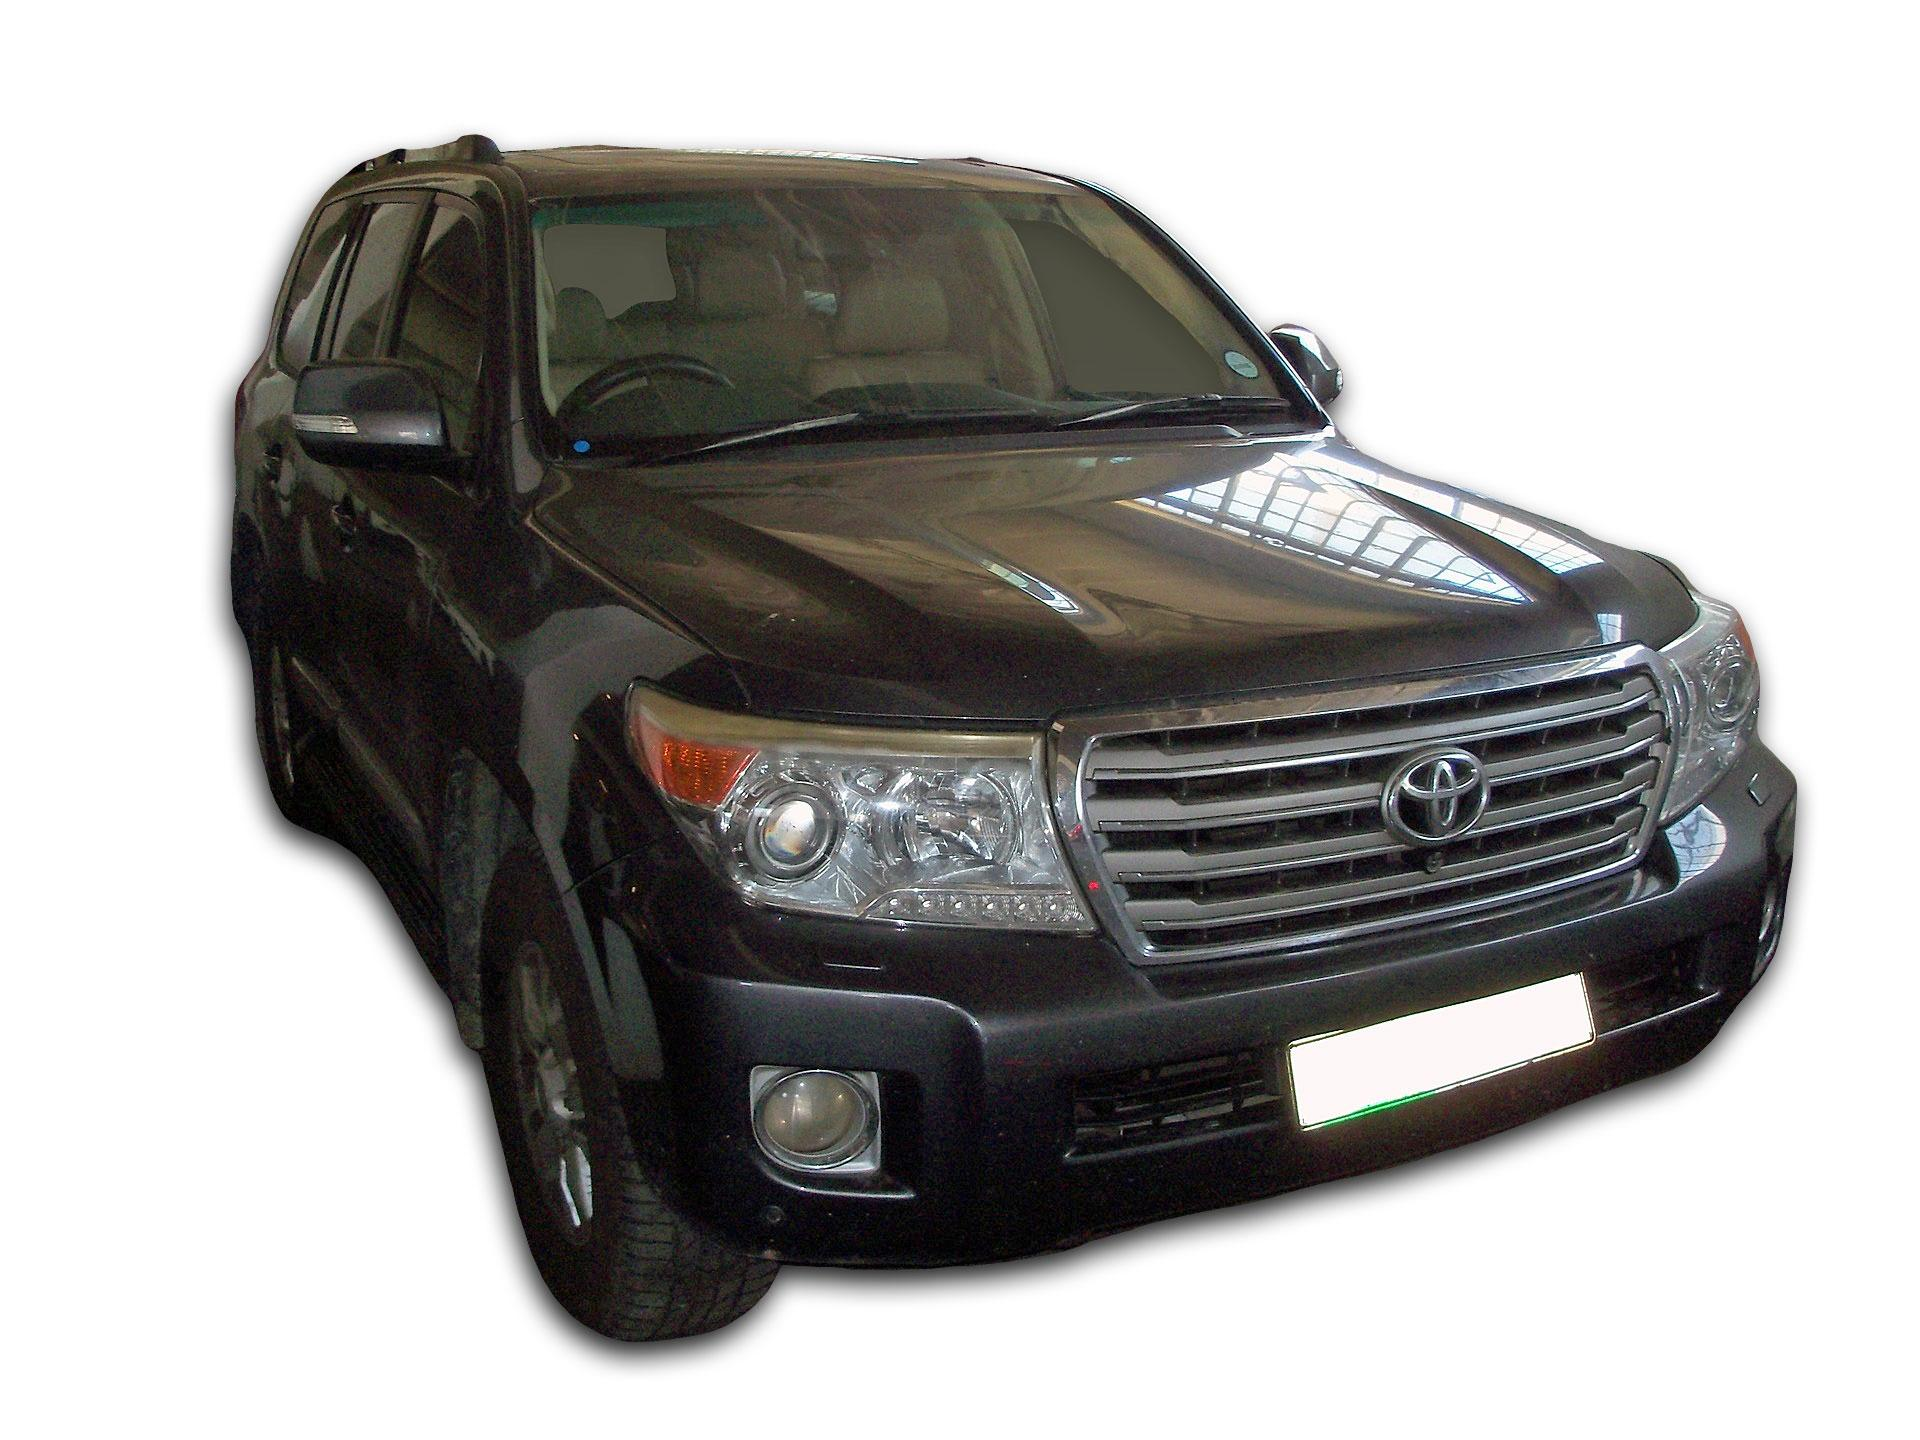 Toyota Land Cruiser 200 V8 4.5D